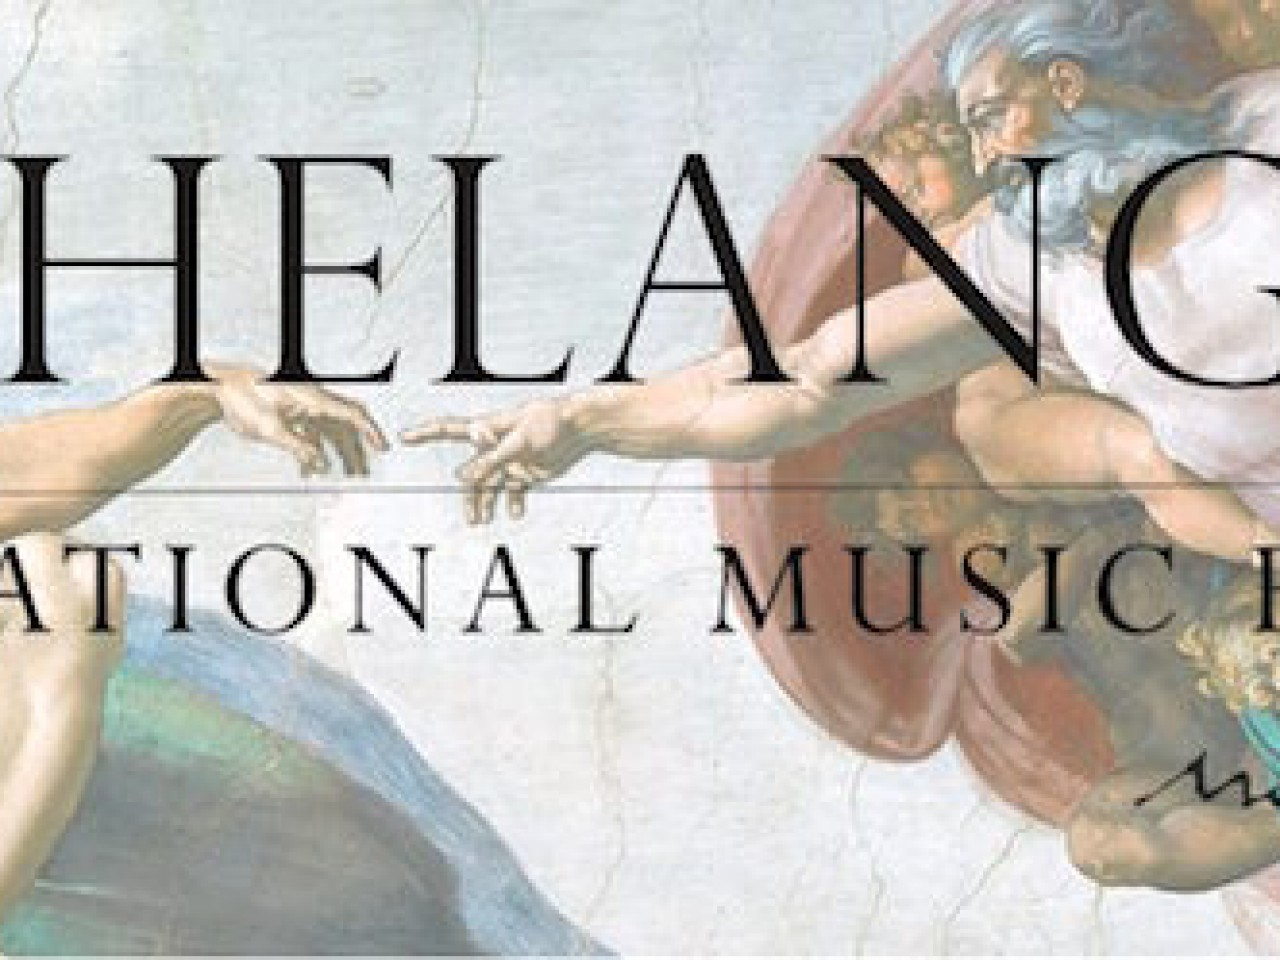 Michaelangelo International Music Festival, Florence